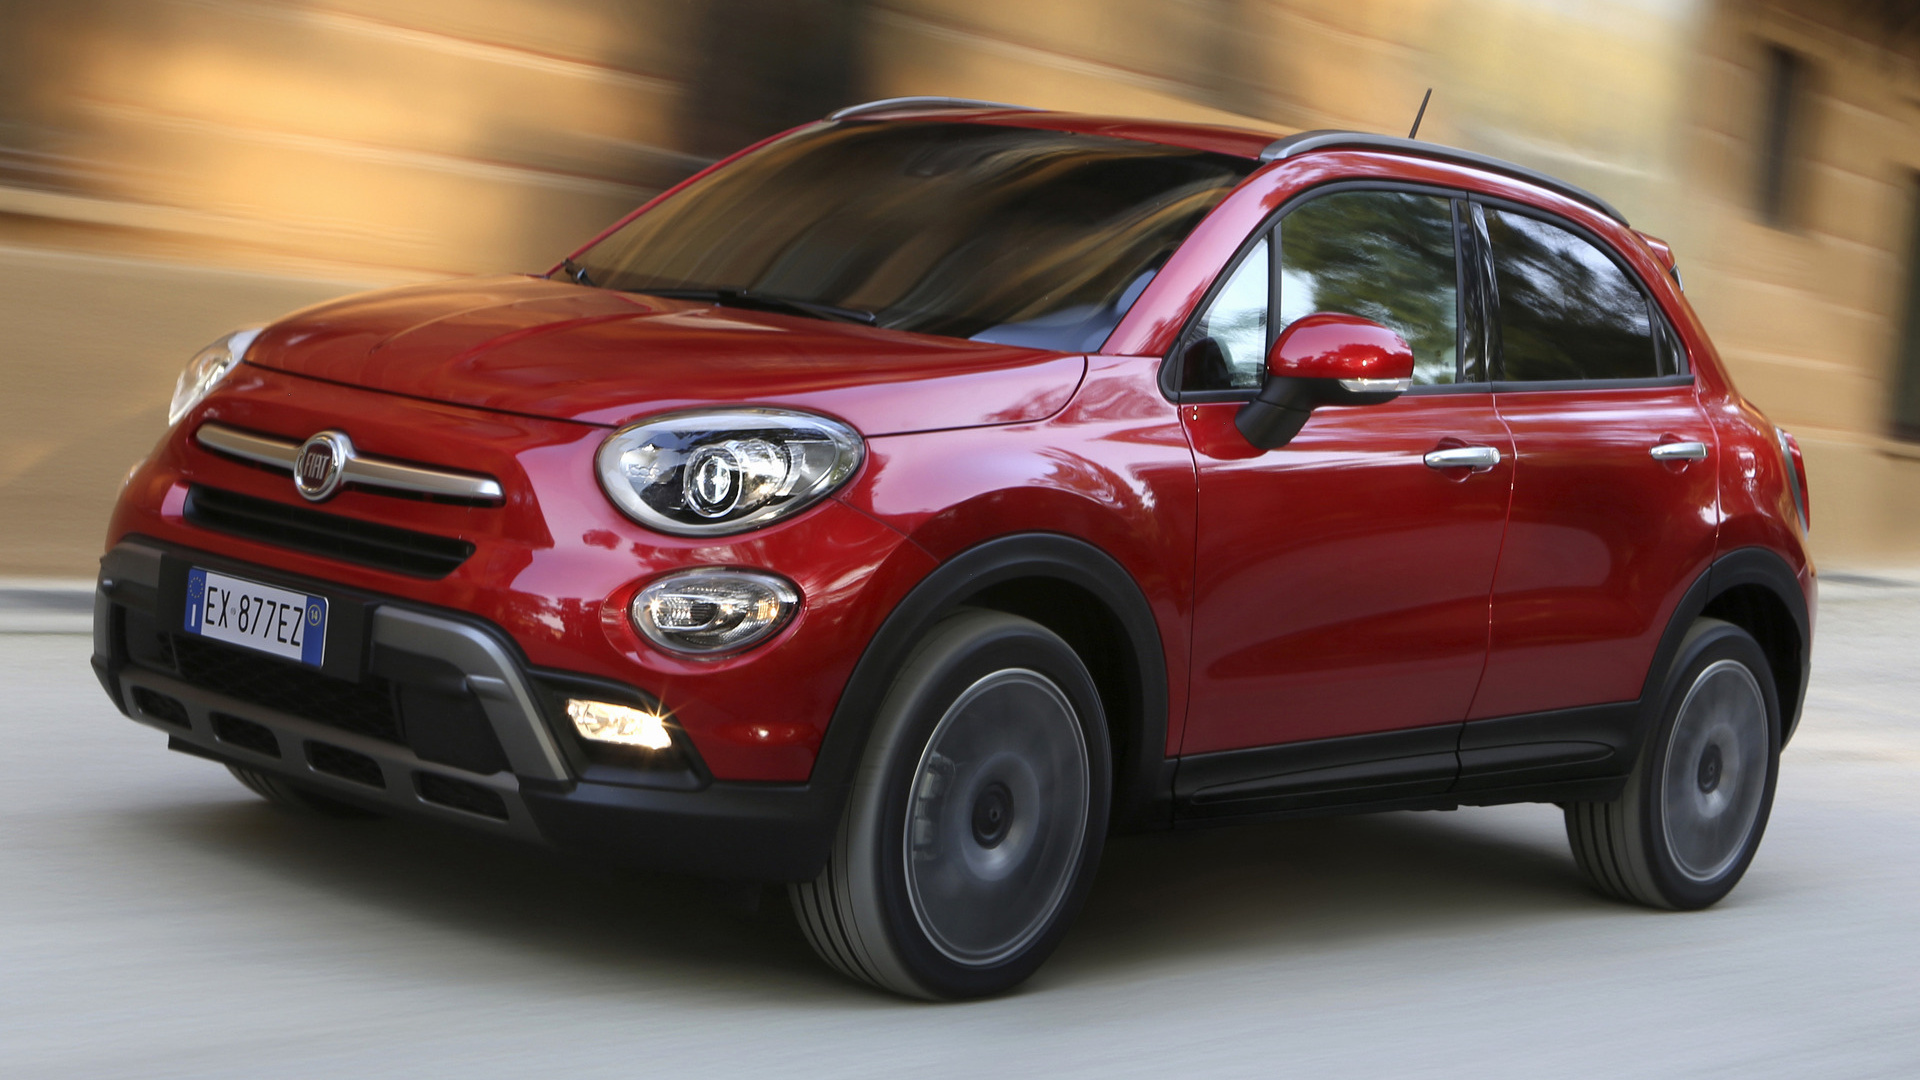 Fiat 500X Cross (2015) Wallpapers and HD Images - Car Pixel